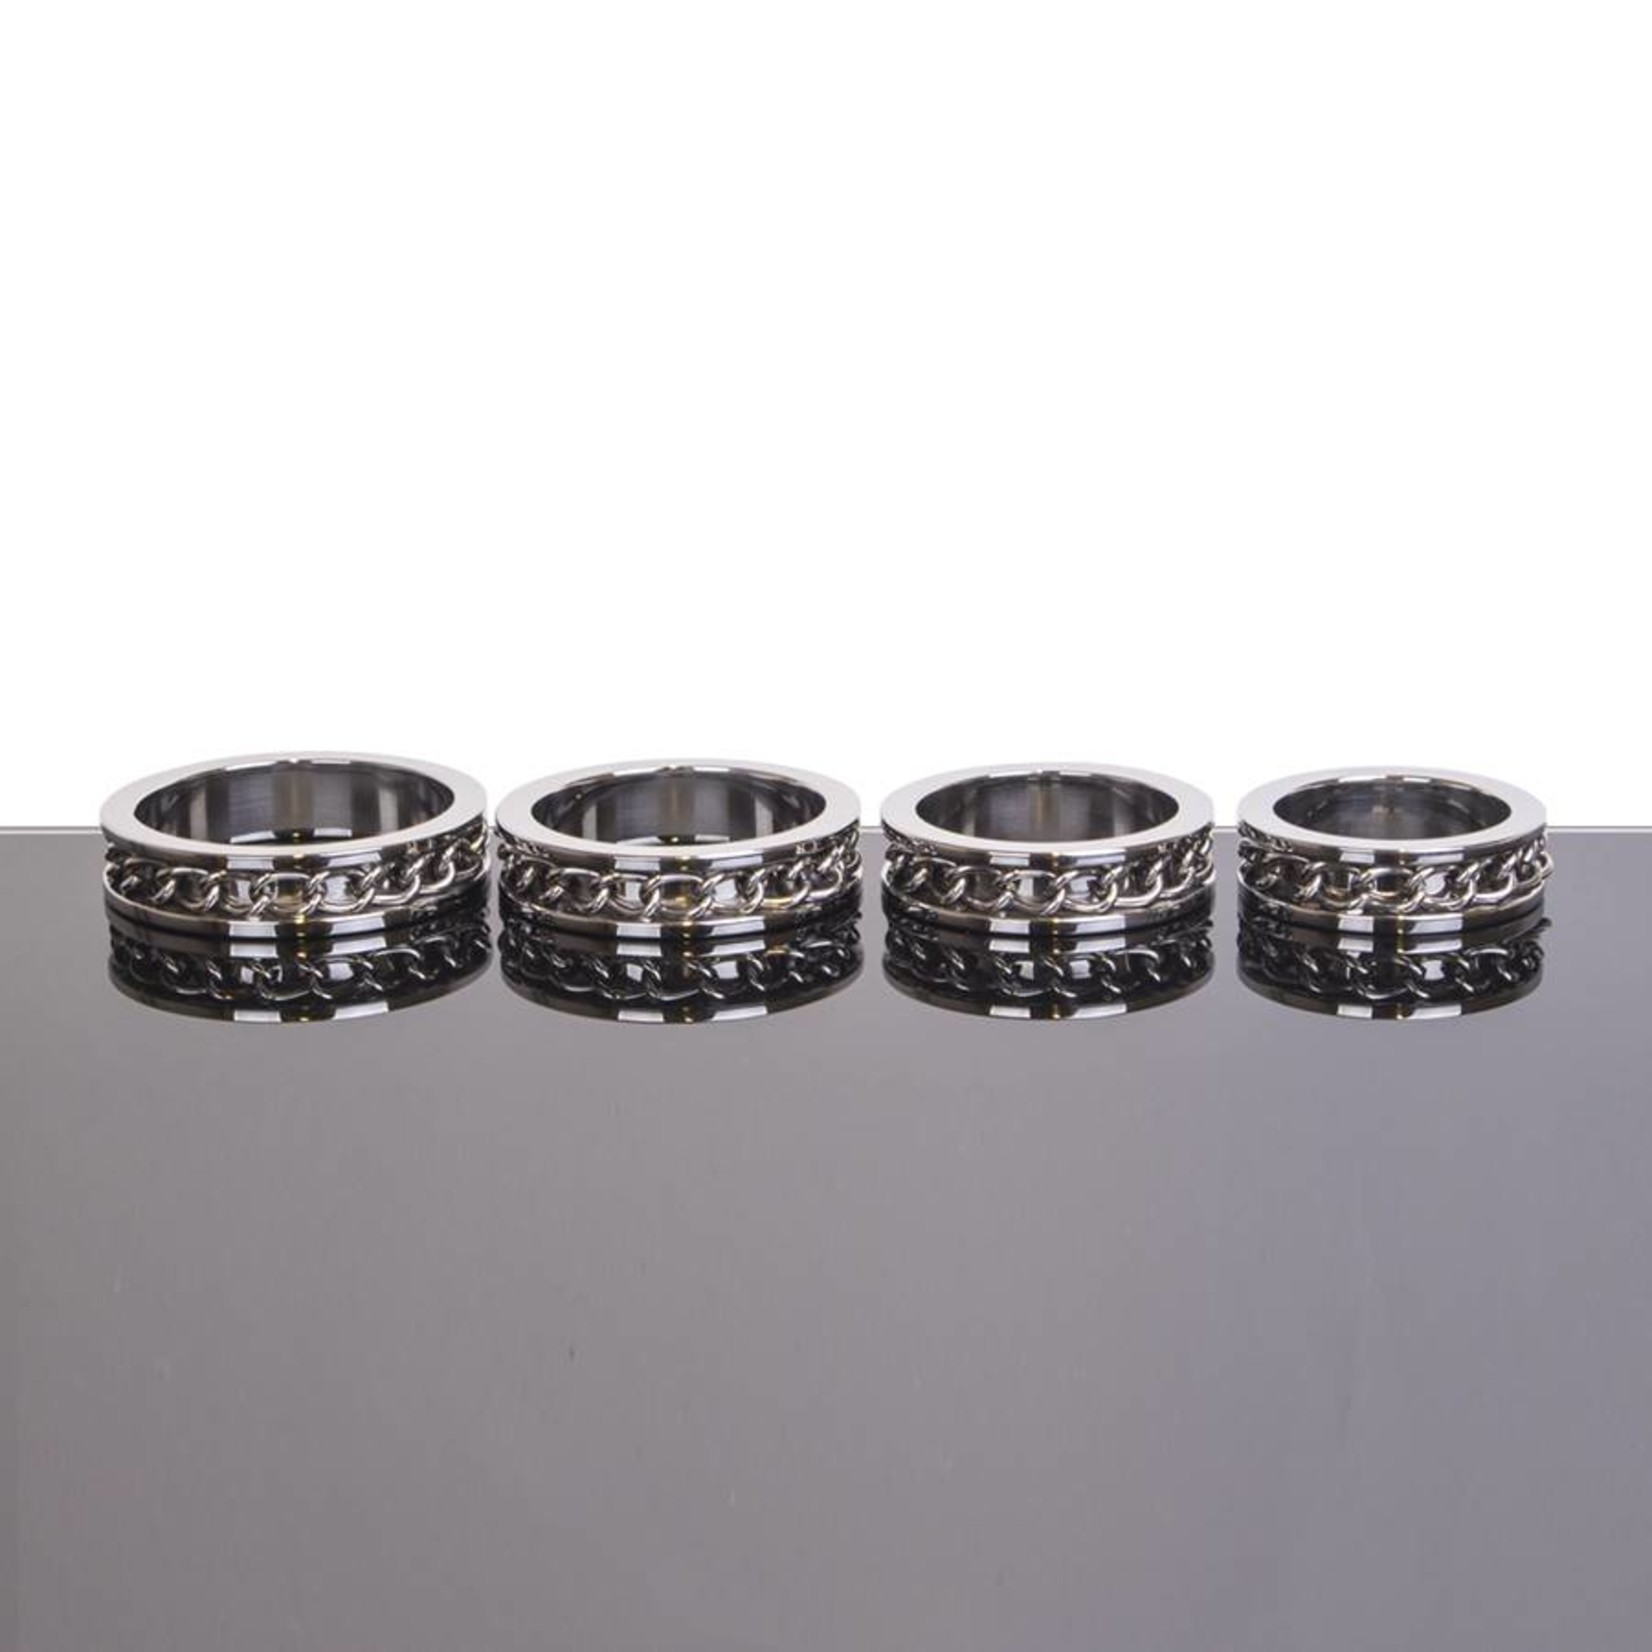 KIOTOS Steel Chain Link Inlay Cock Ring - Stainless Steel - 50 mm